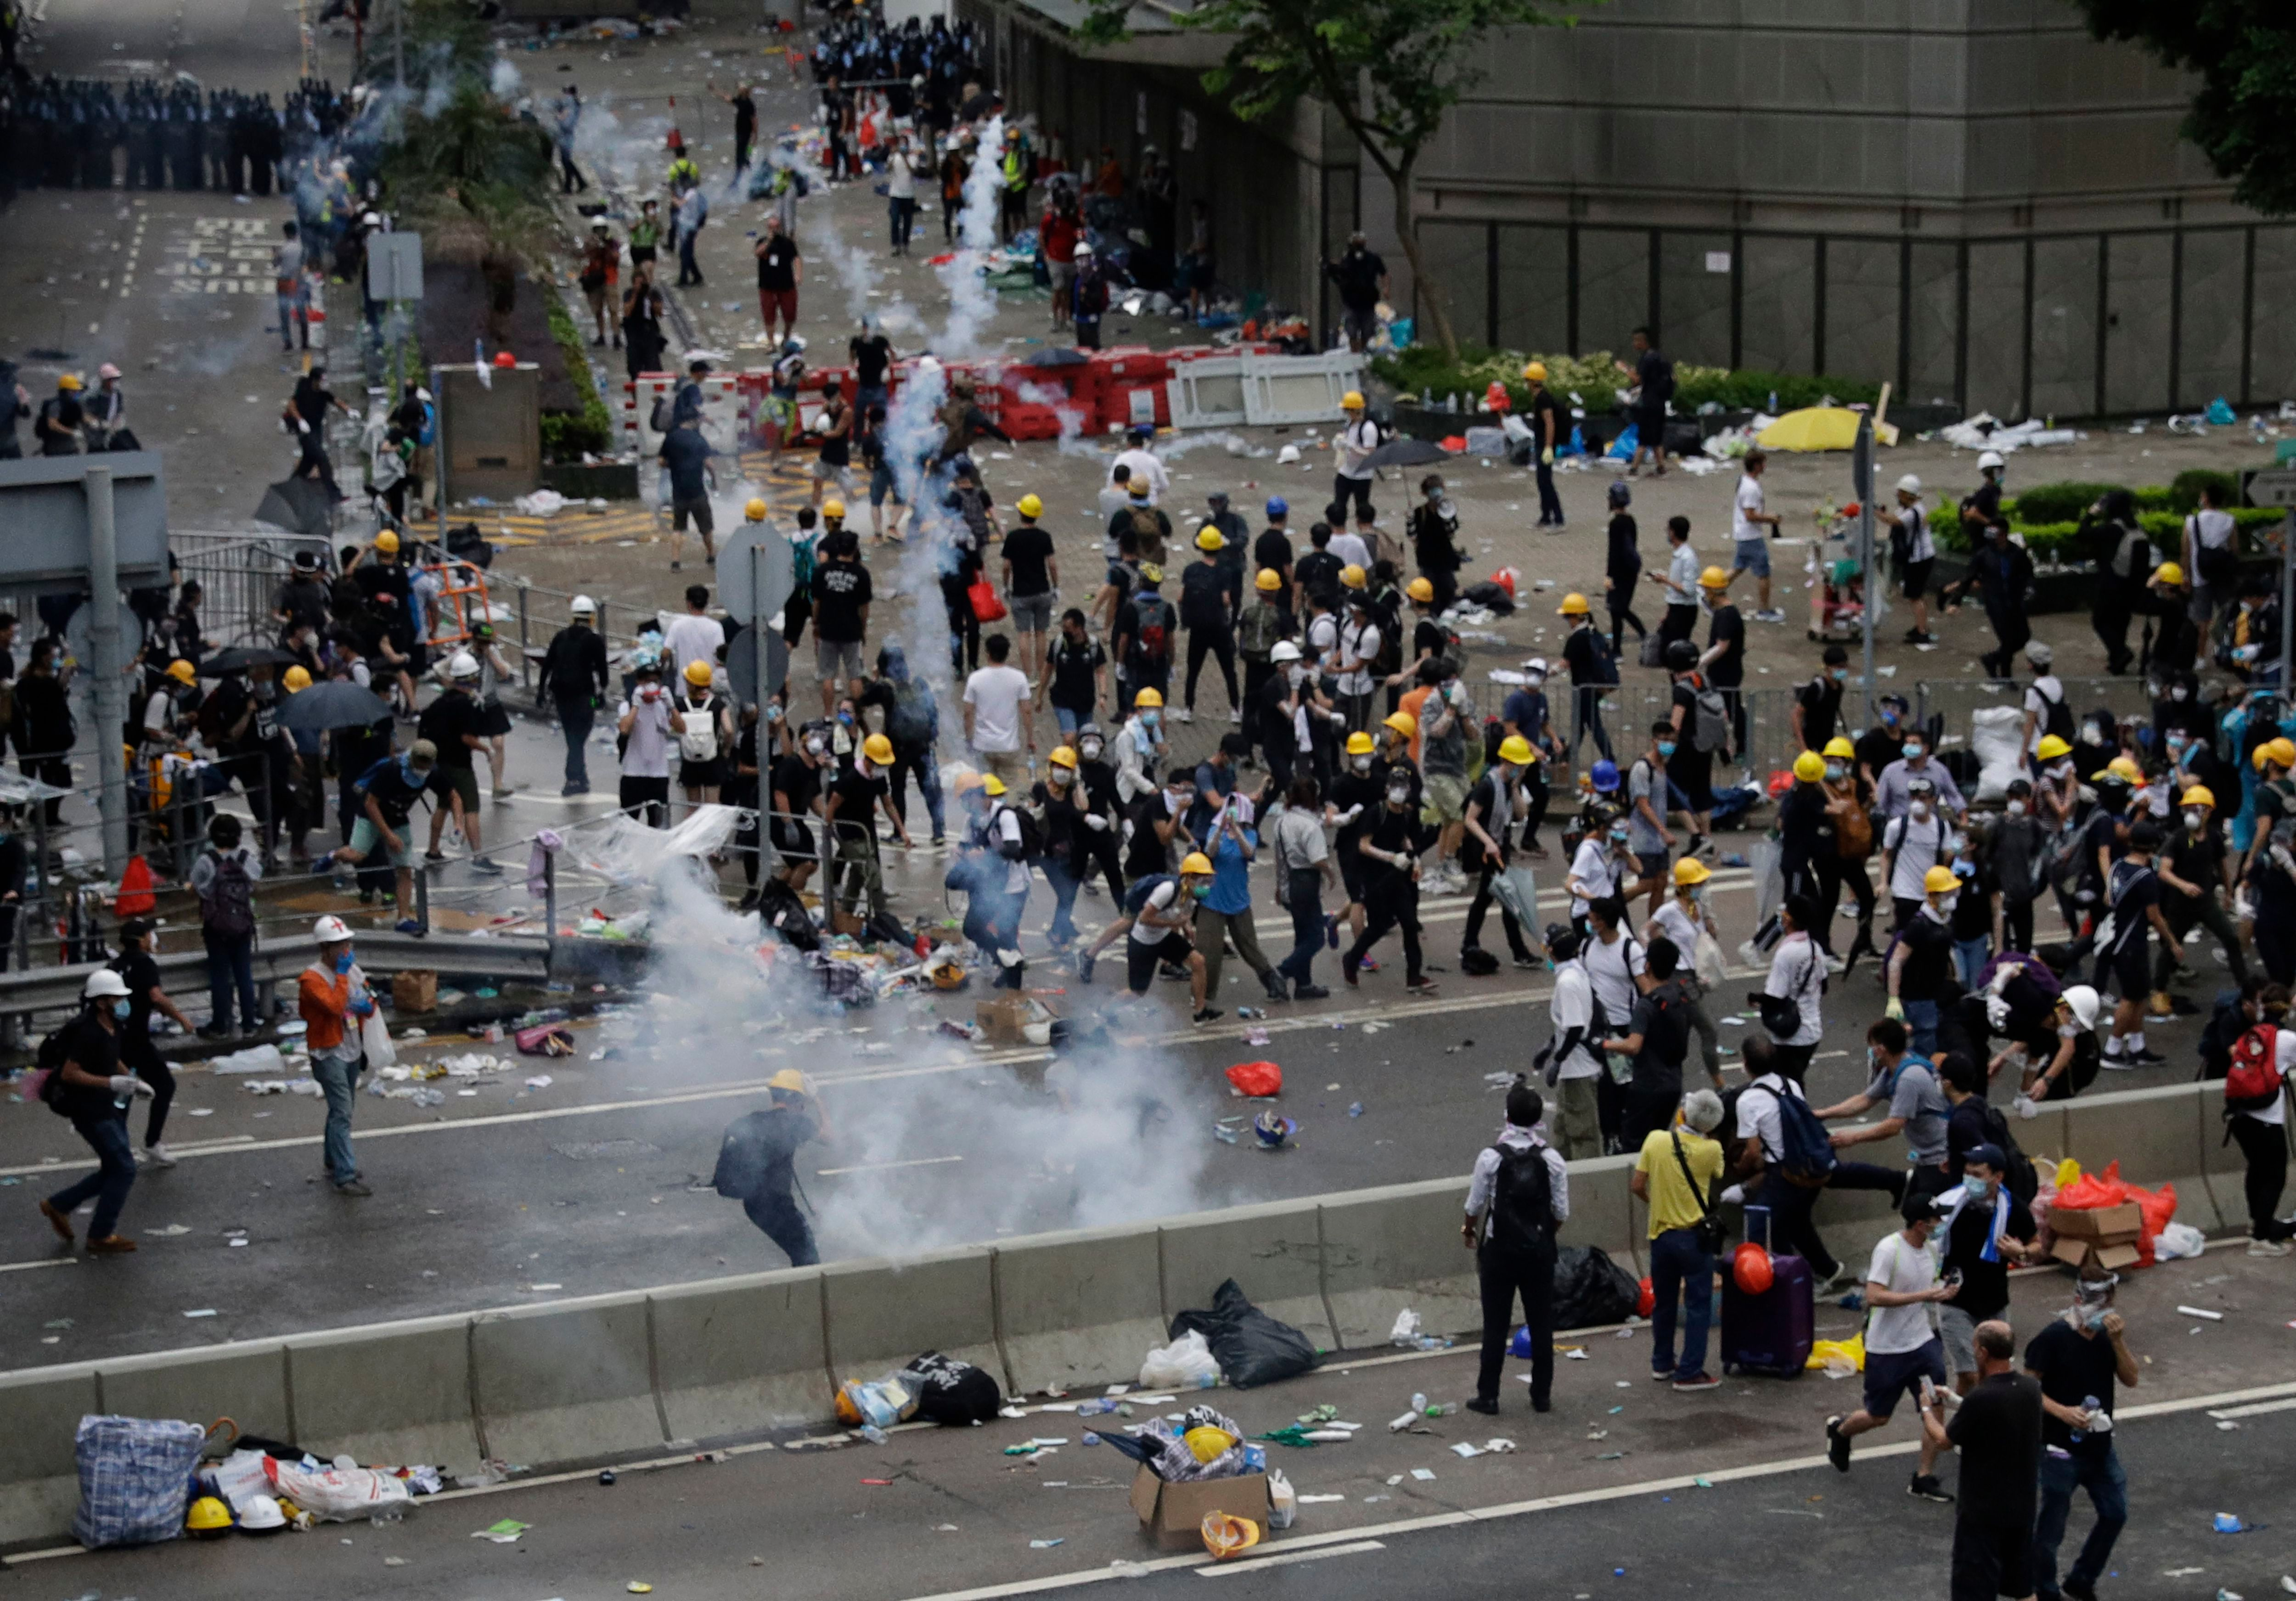 Hong Kong police fire tear gas at crowds protesting a proposed extradition bill.